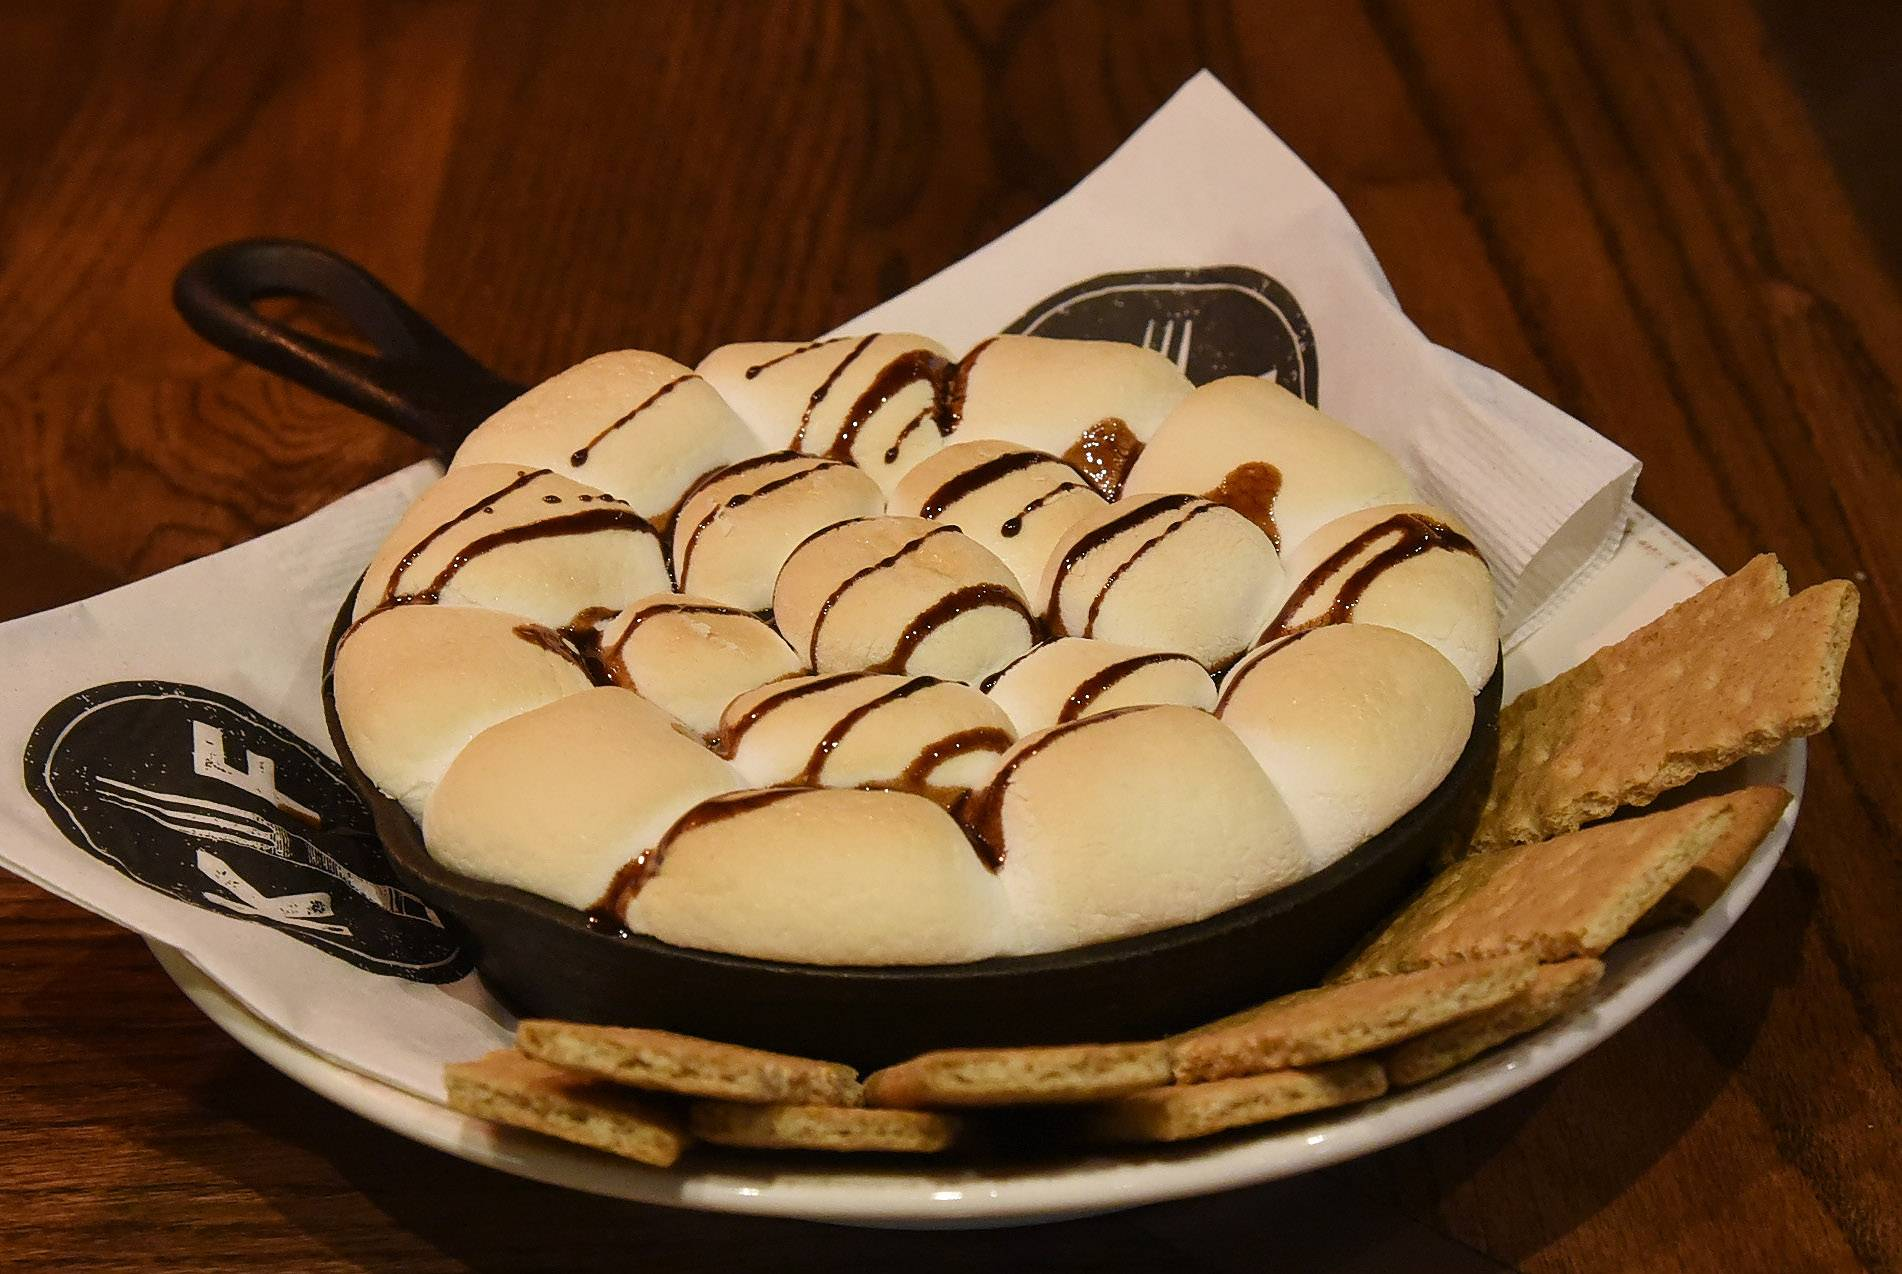 Kinfork in Schaumburg will be serving the s'mores skillet as part of its special Chicago Northwest Restaurant Week menu Friday, Feb. 23, through Sunday, March 4.